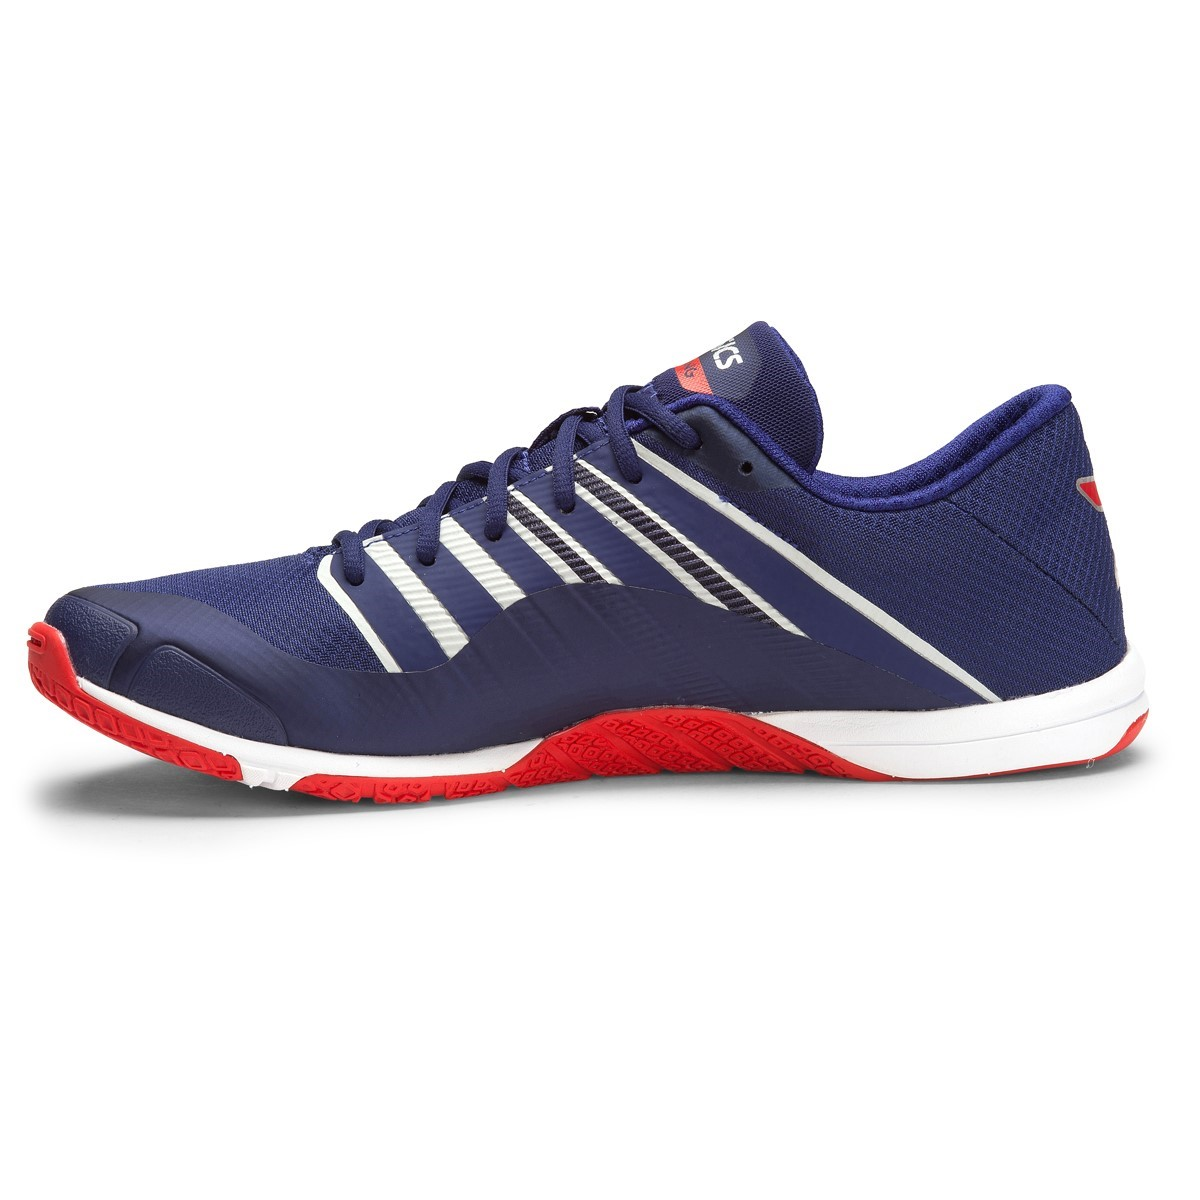 Asics Cross Homme Met 19413 Conviction Chaussures Cross Training Homme Bleu Indigo e8076d4 - kyomin.website